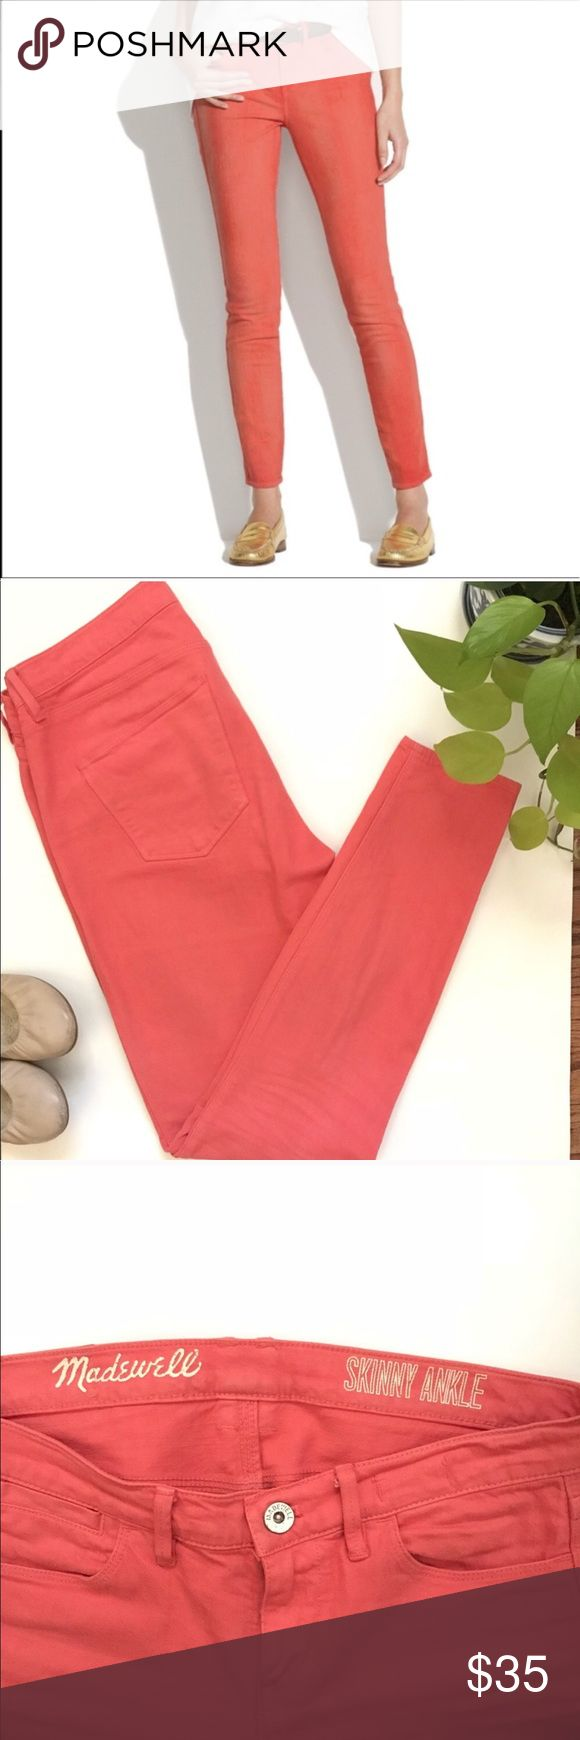 """Madewell coral skinny jeans Madewell coral skinny jeans. 100% cotton and super comfortable in size 25 and inseam about 28.5"""". They were rarely worn and in excellent condition. For sizing reference, I am 5'4"""" and weight 115 lbs, and these hit perfectly at the ankles. Bundle up to save! Madewell Jeans Skinny"""